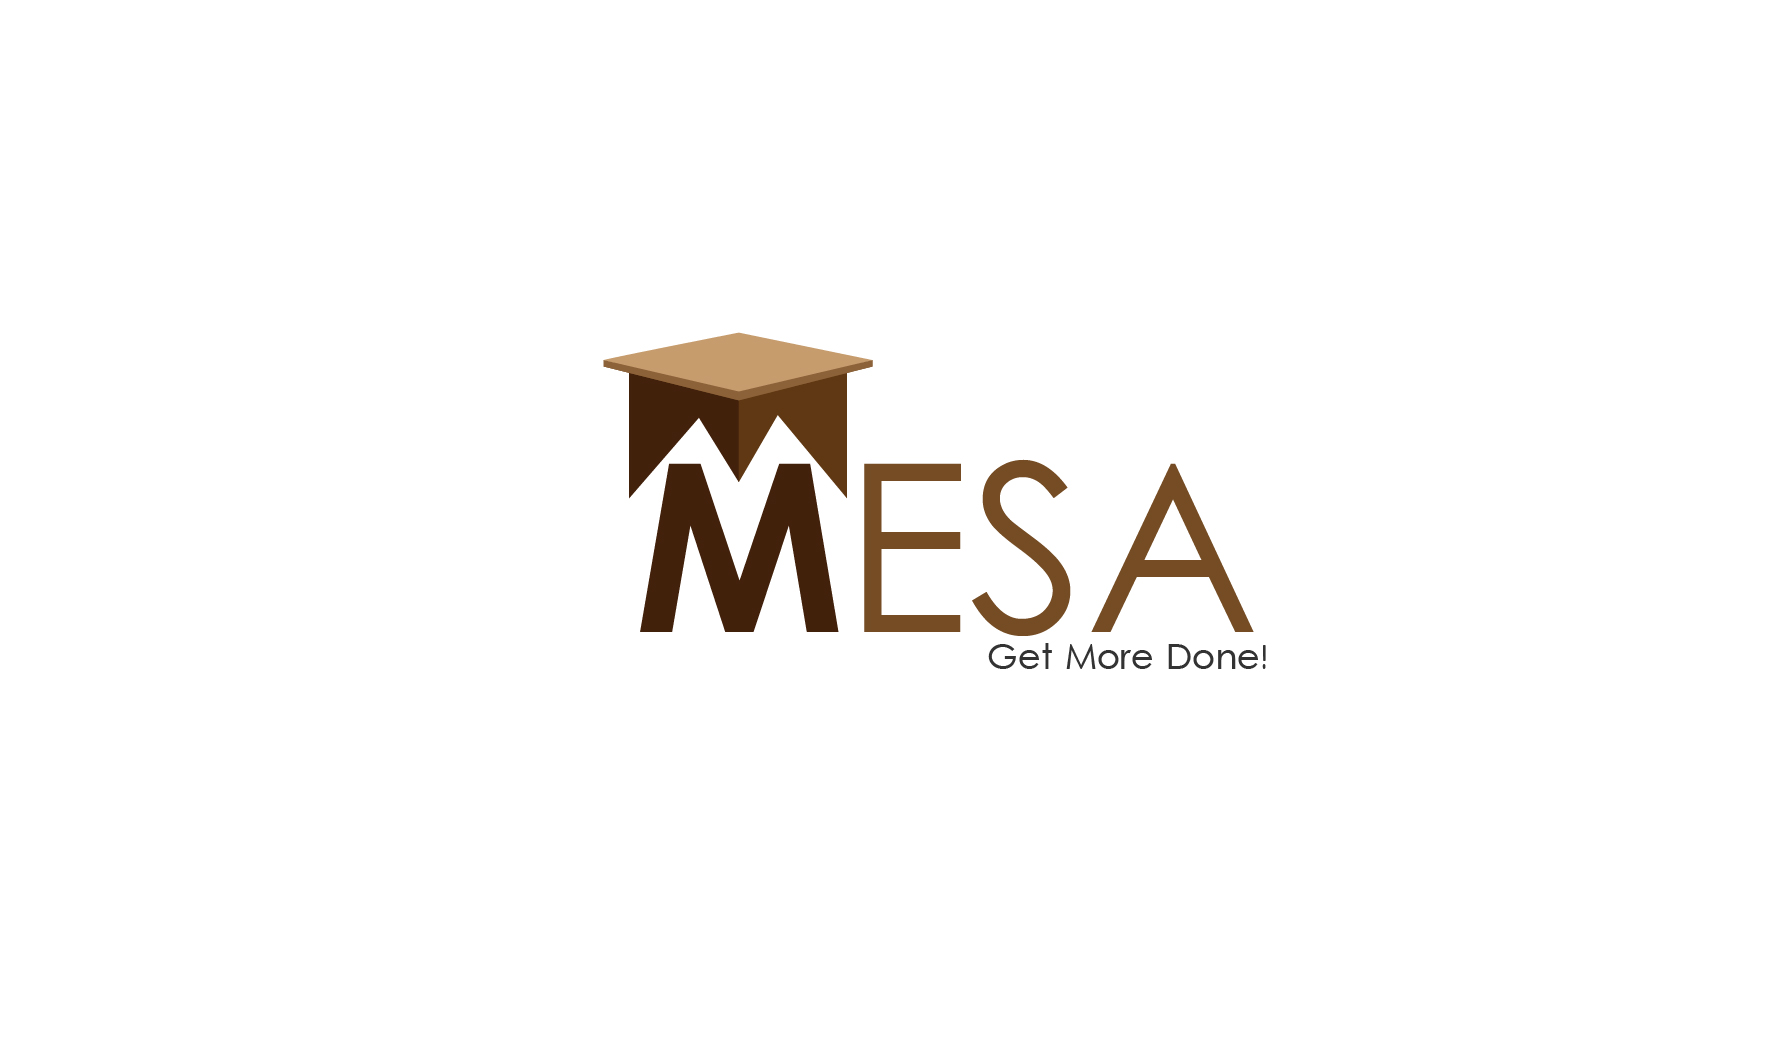 Logo Design by 3draw - Entry No. 157 in the Logo Design Contest Logo Design for Mesa.